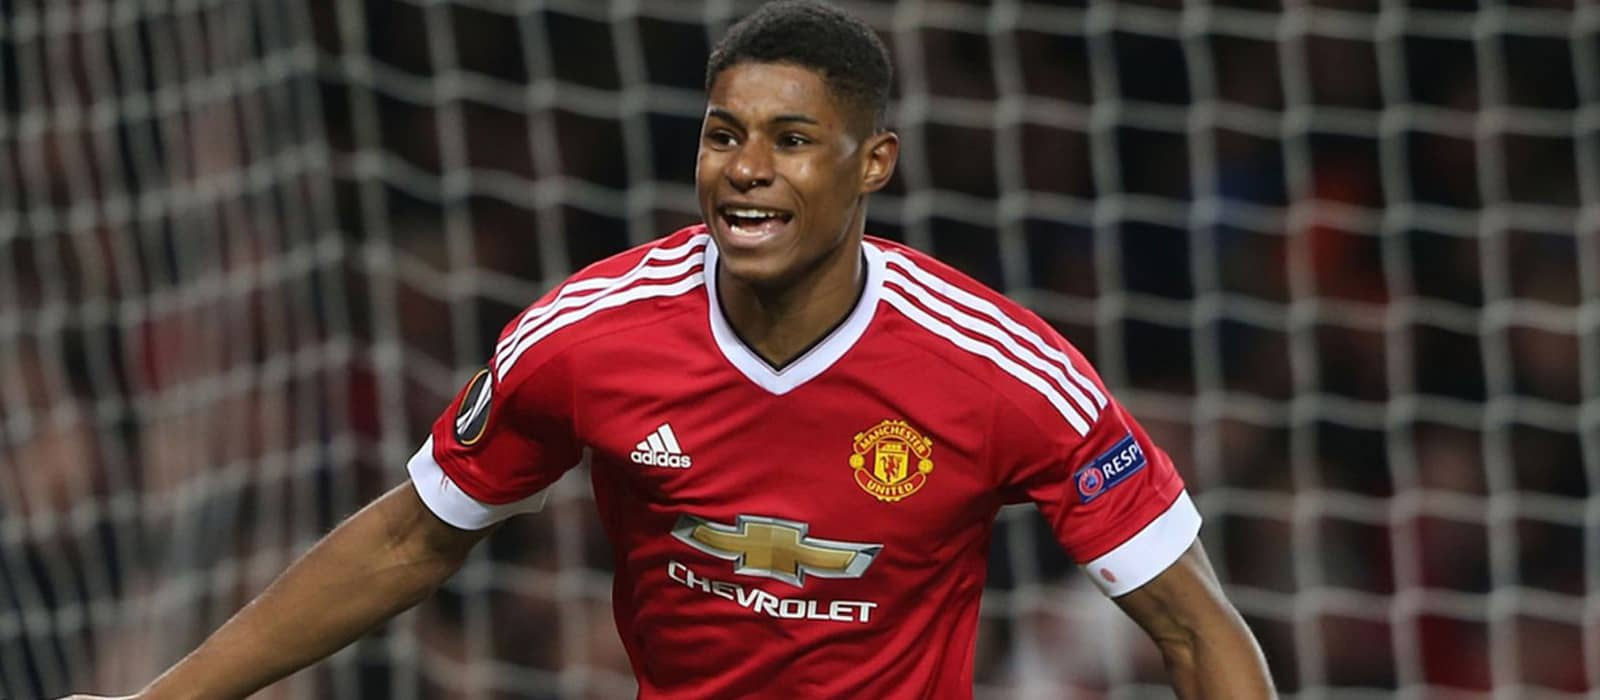 Peter Schmeichel: Manchester United must rest Rashford